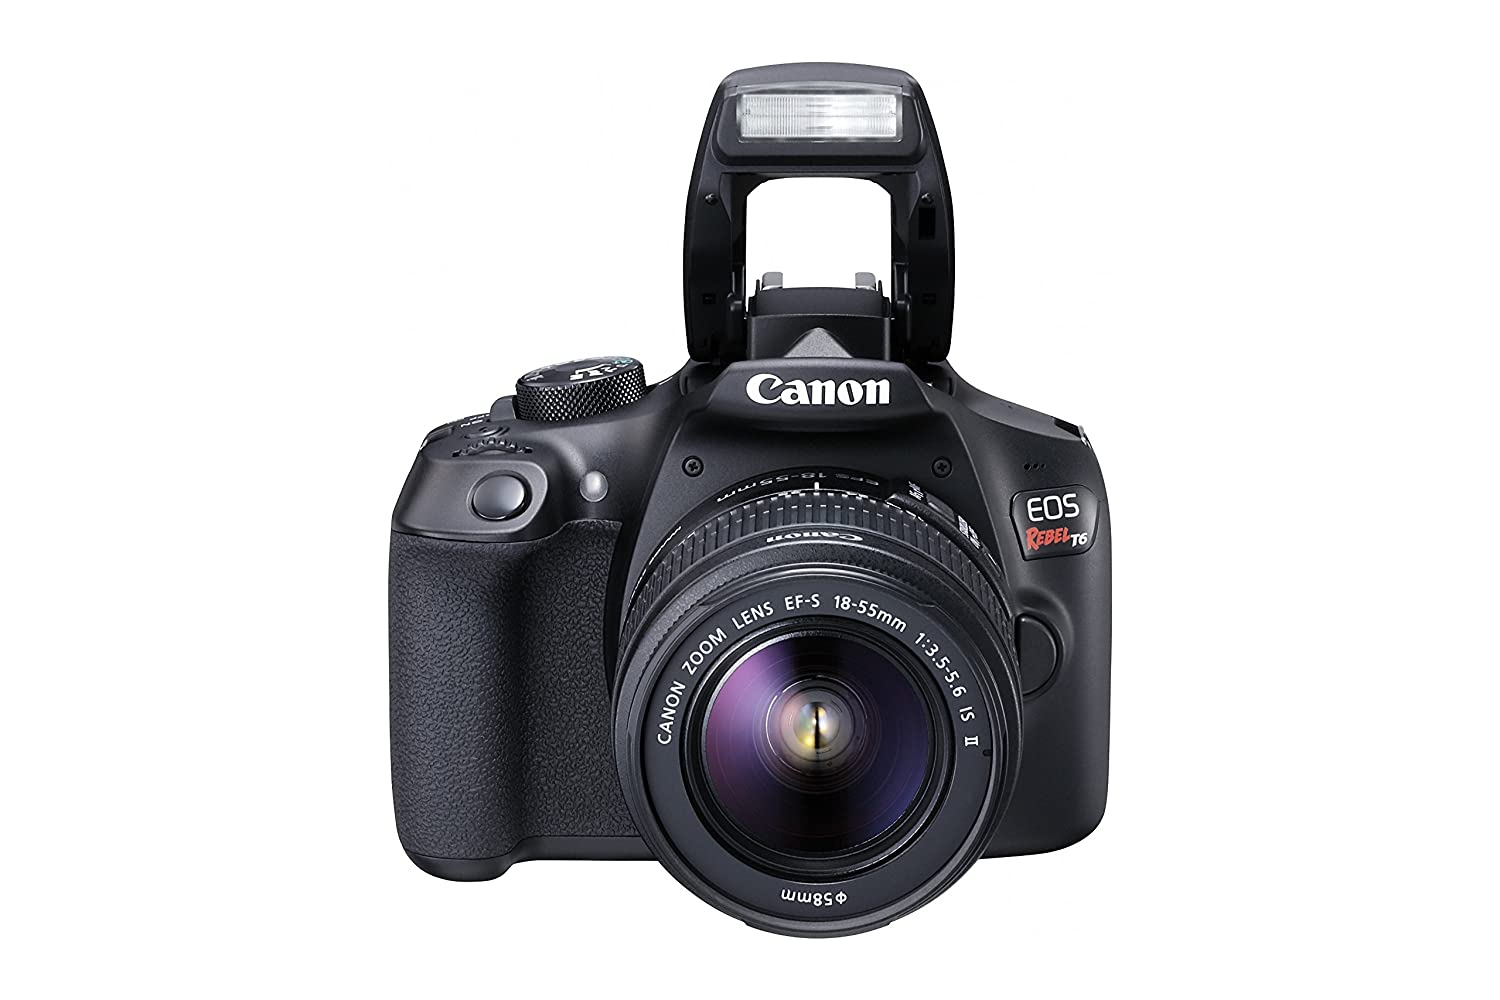 Camera Buy Dslr Camera Canada amazon canada canon eos rebel t6 digital slr camera kit with ef s 18 55mm f3 5 6 is ii lens black